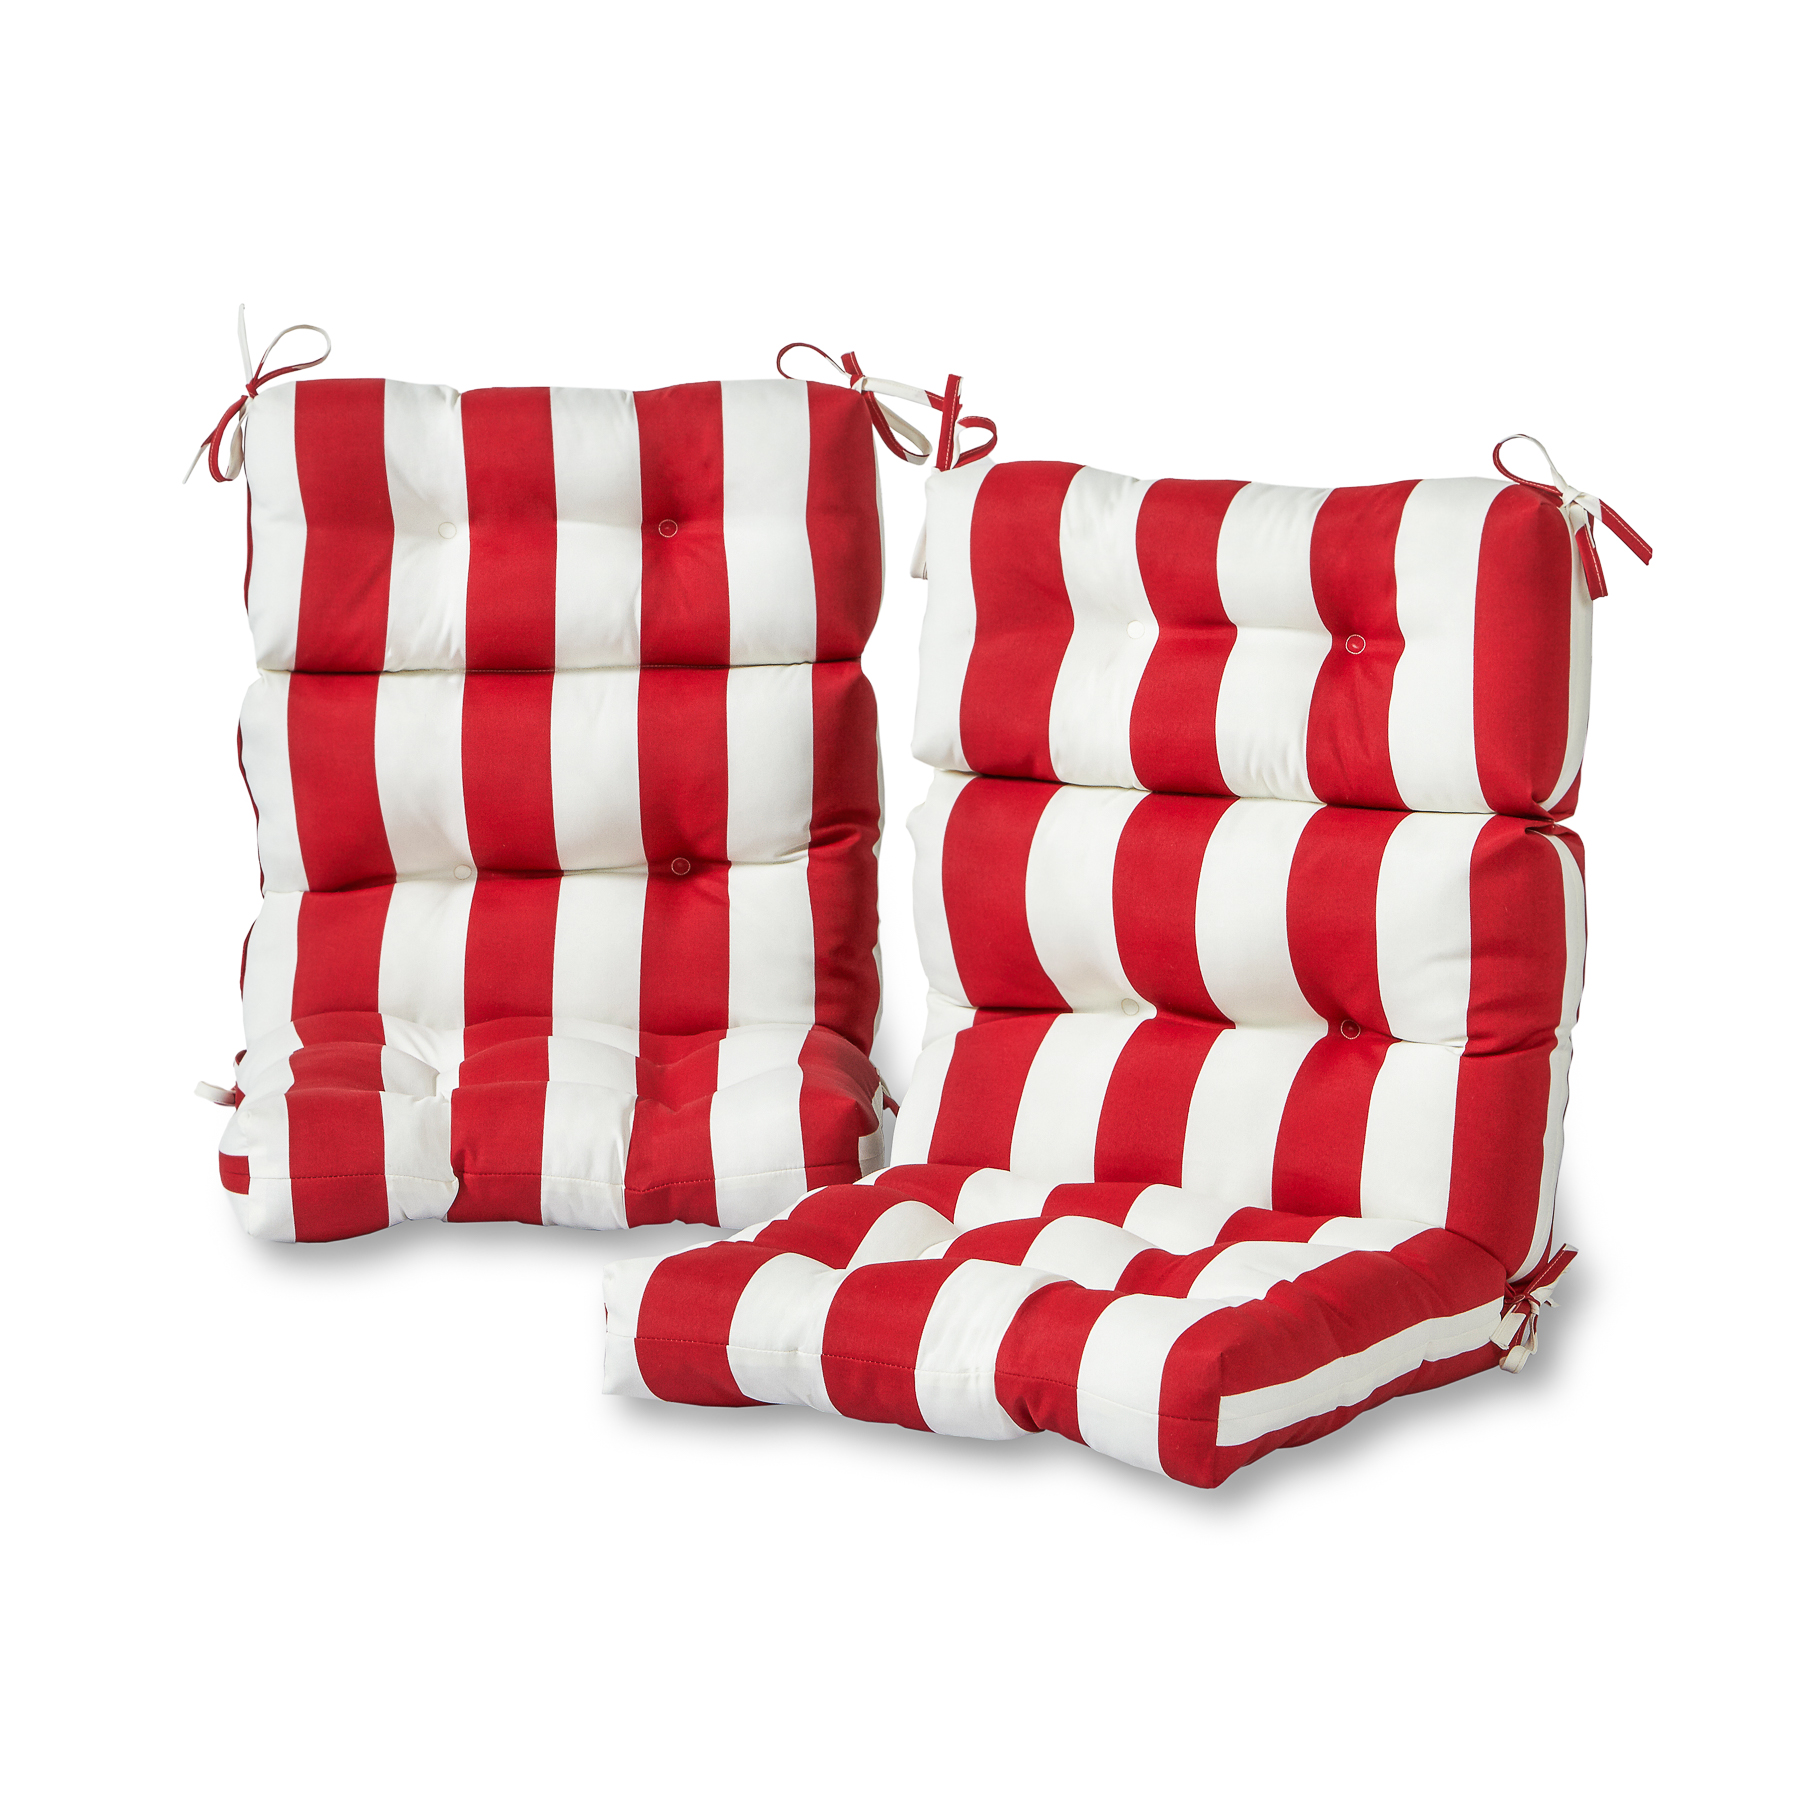 Cabana Stripe Red 44 x 22 in. Outdoor High Back Chair Cushion, Set of 2